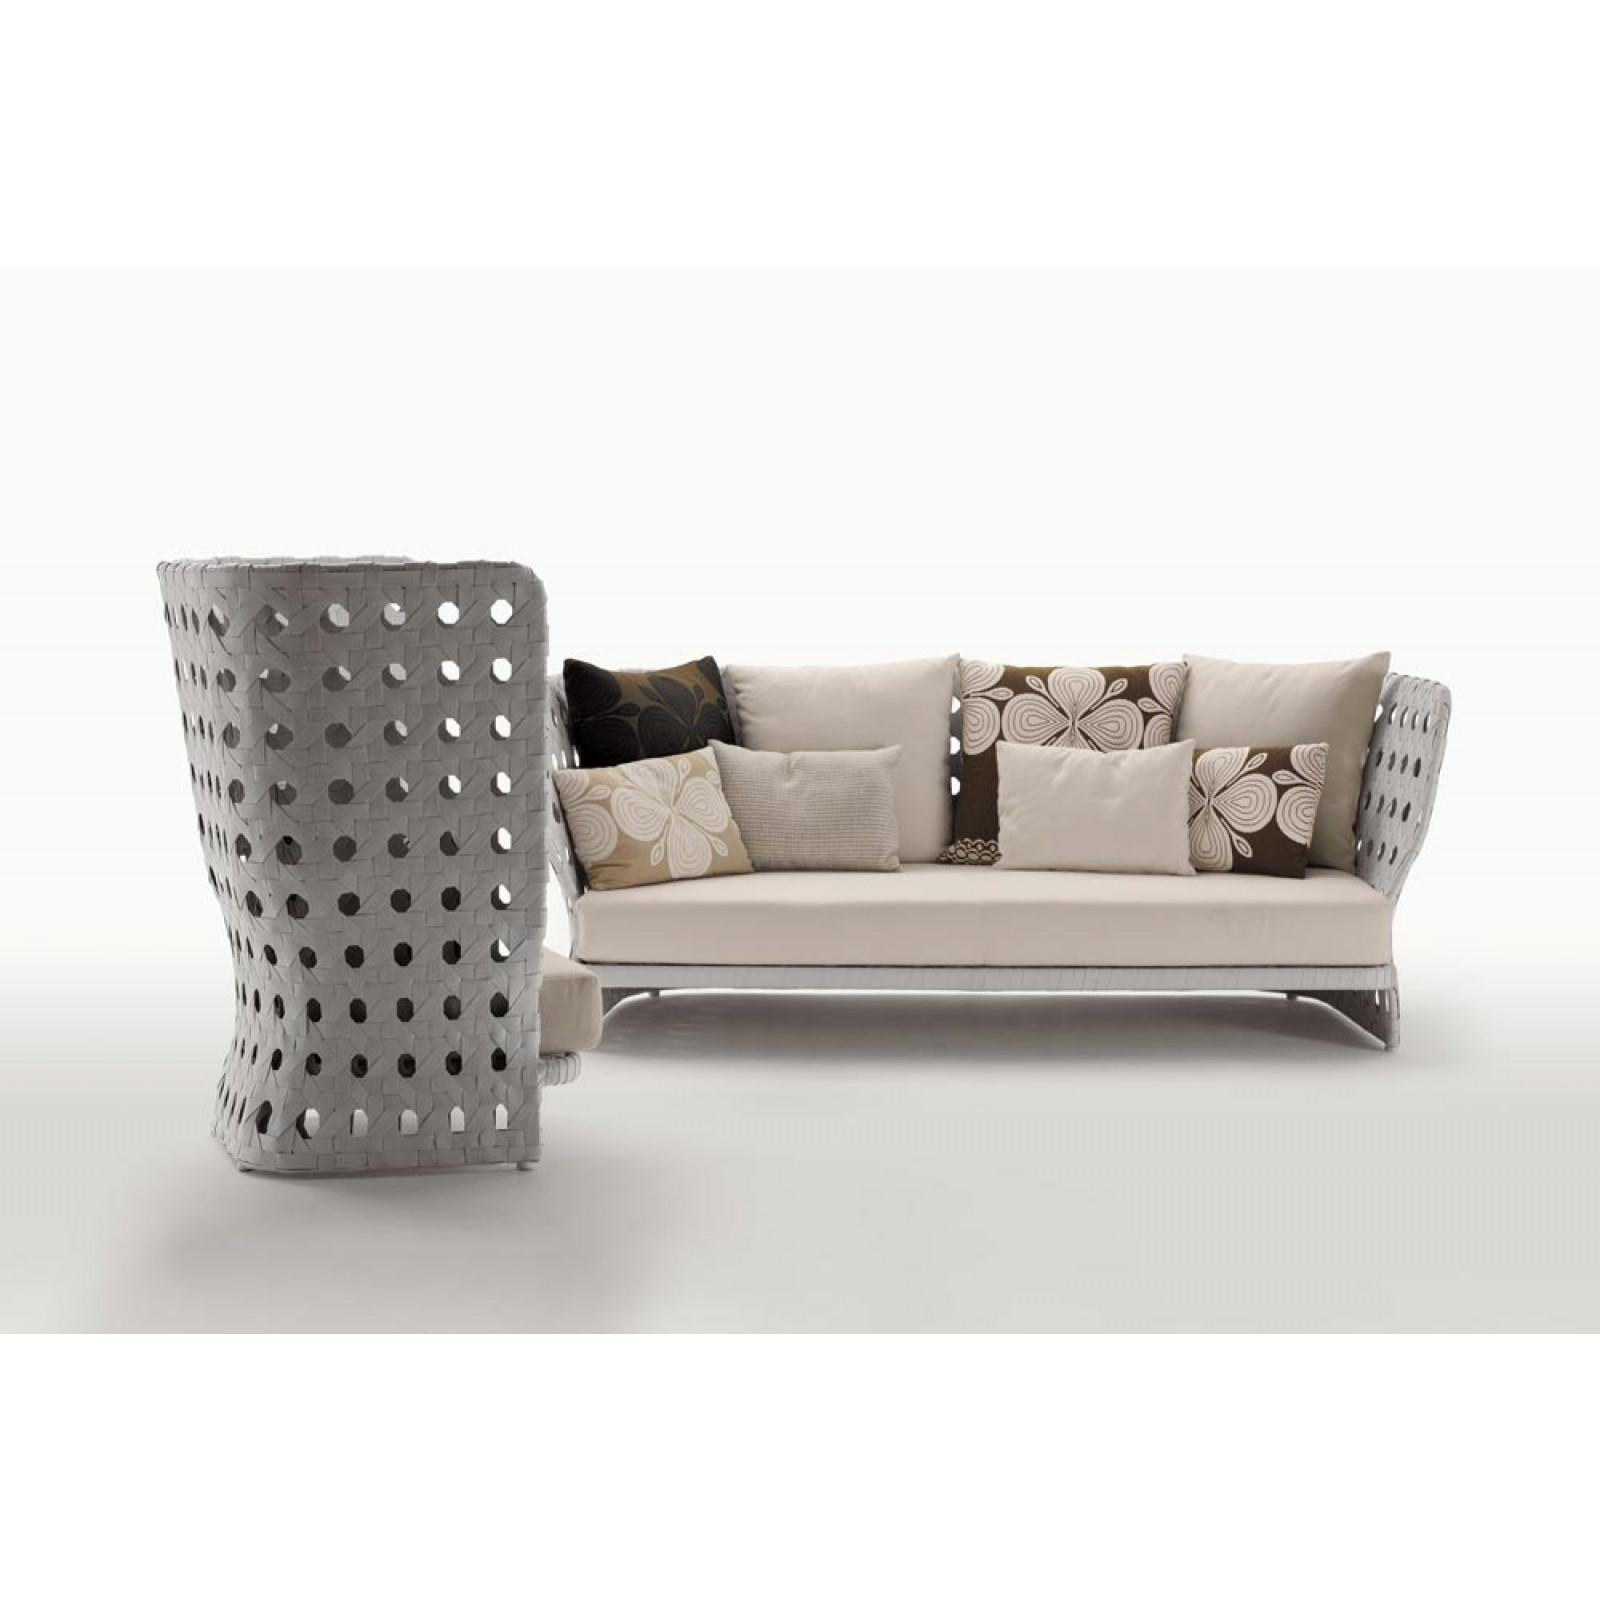 B&B Italia Canasta Outdoor Loungesofa 229 cm